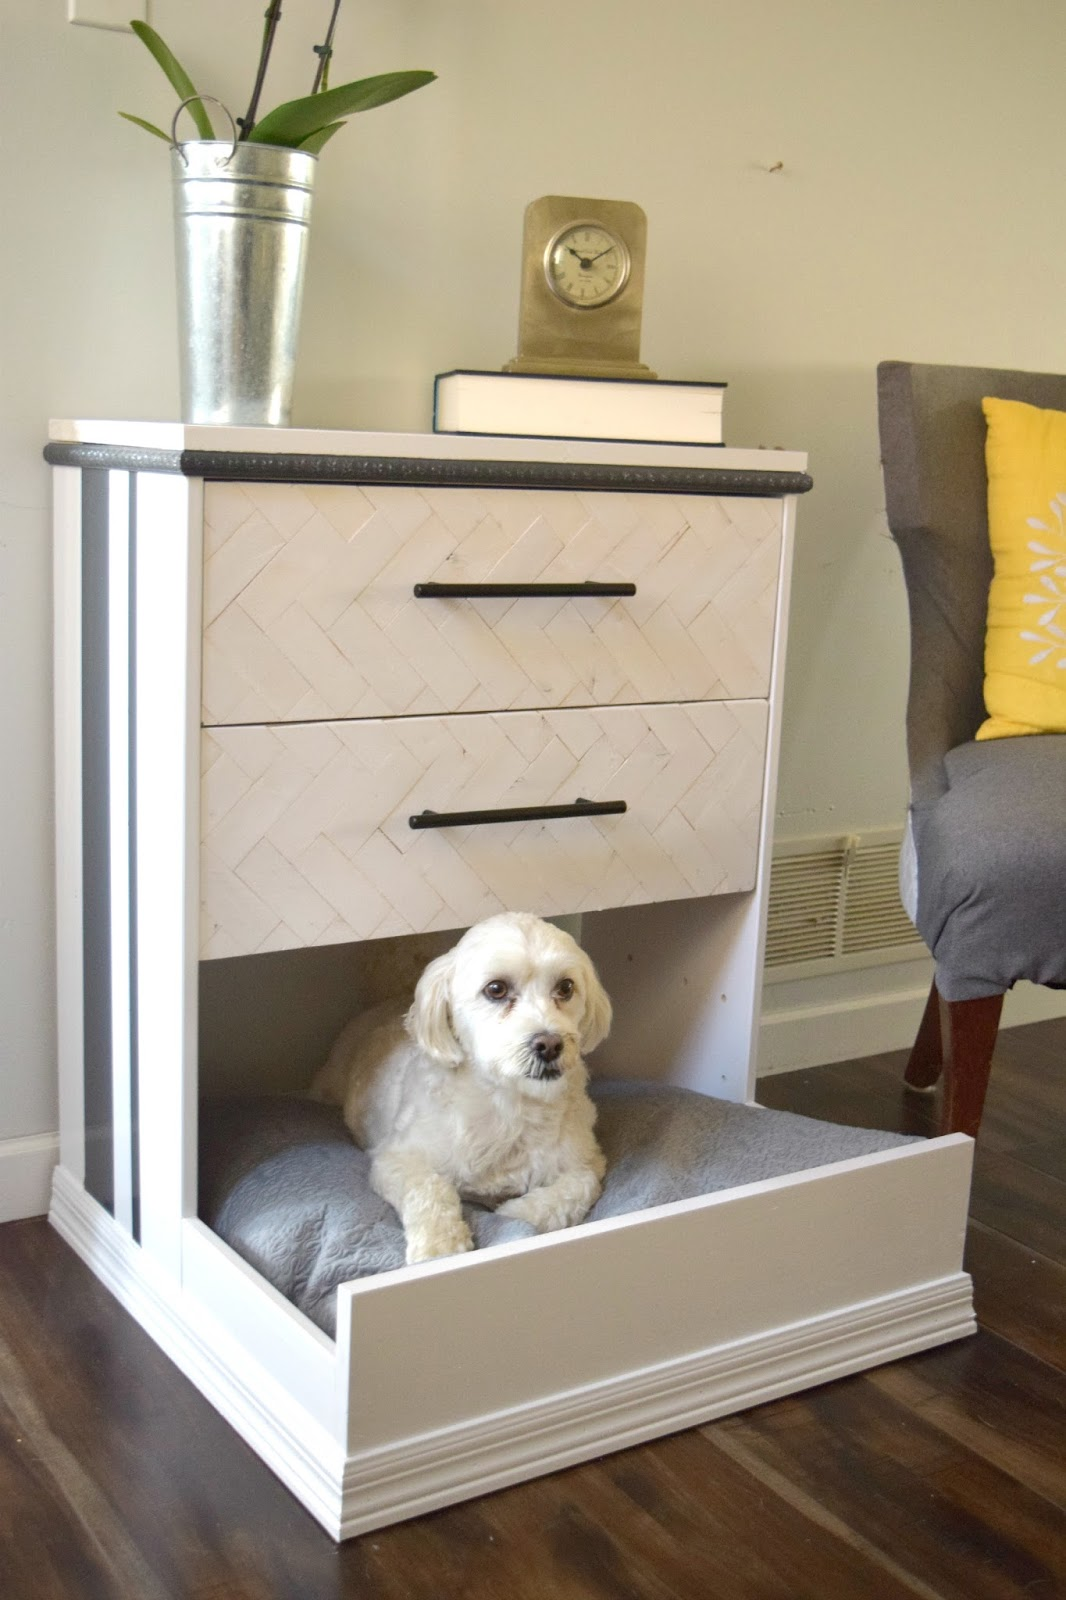 Ikea Rast Dresser Hack Dresser Into Dog Bed Our House